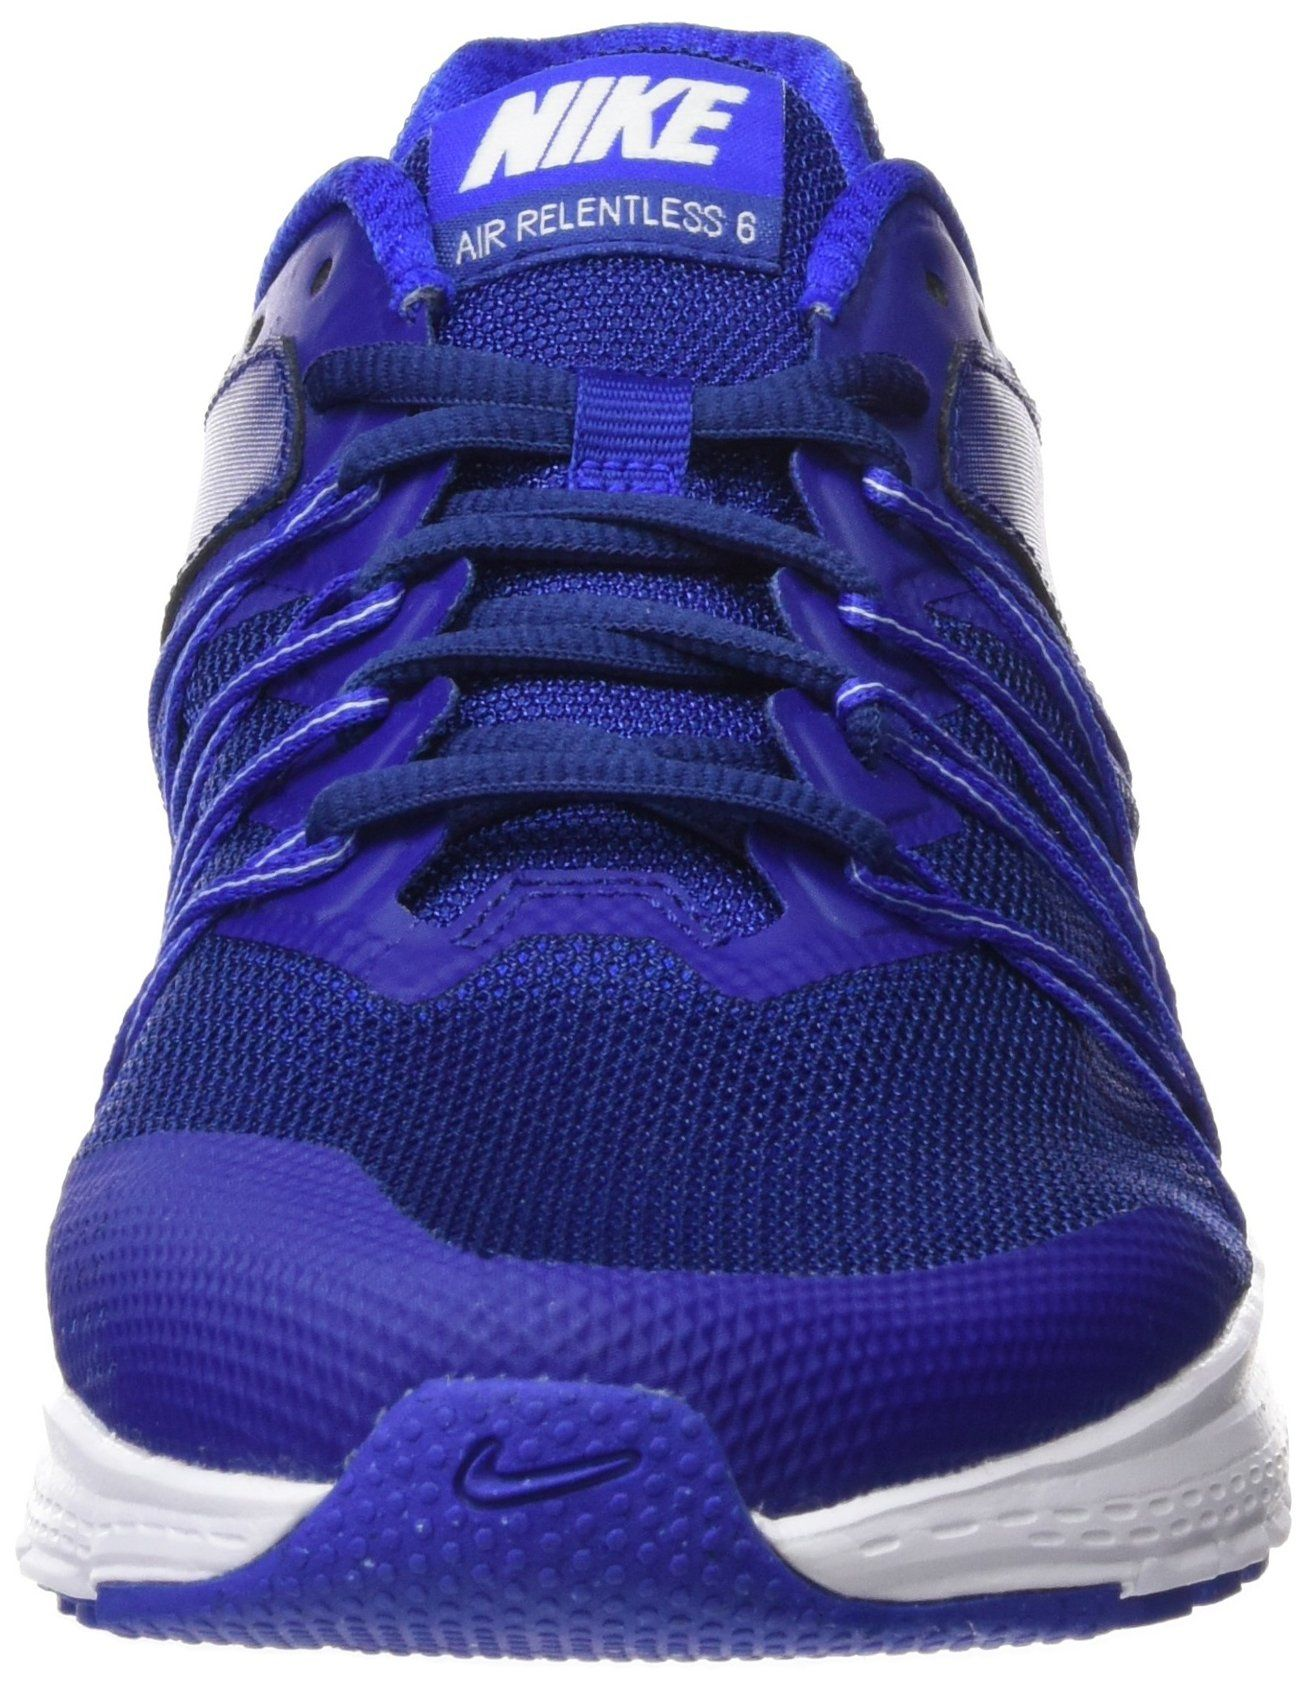 Soledad Porcentaje en términos de  Golf Shoes *** NIKE Air Relentless 6 Mens Running Trainers 843836 Sneakers  Shoes US 11 deep Royal Blue White 400… | Golf shoes mens, Mens running  trainers, Nike men